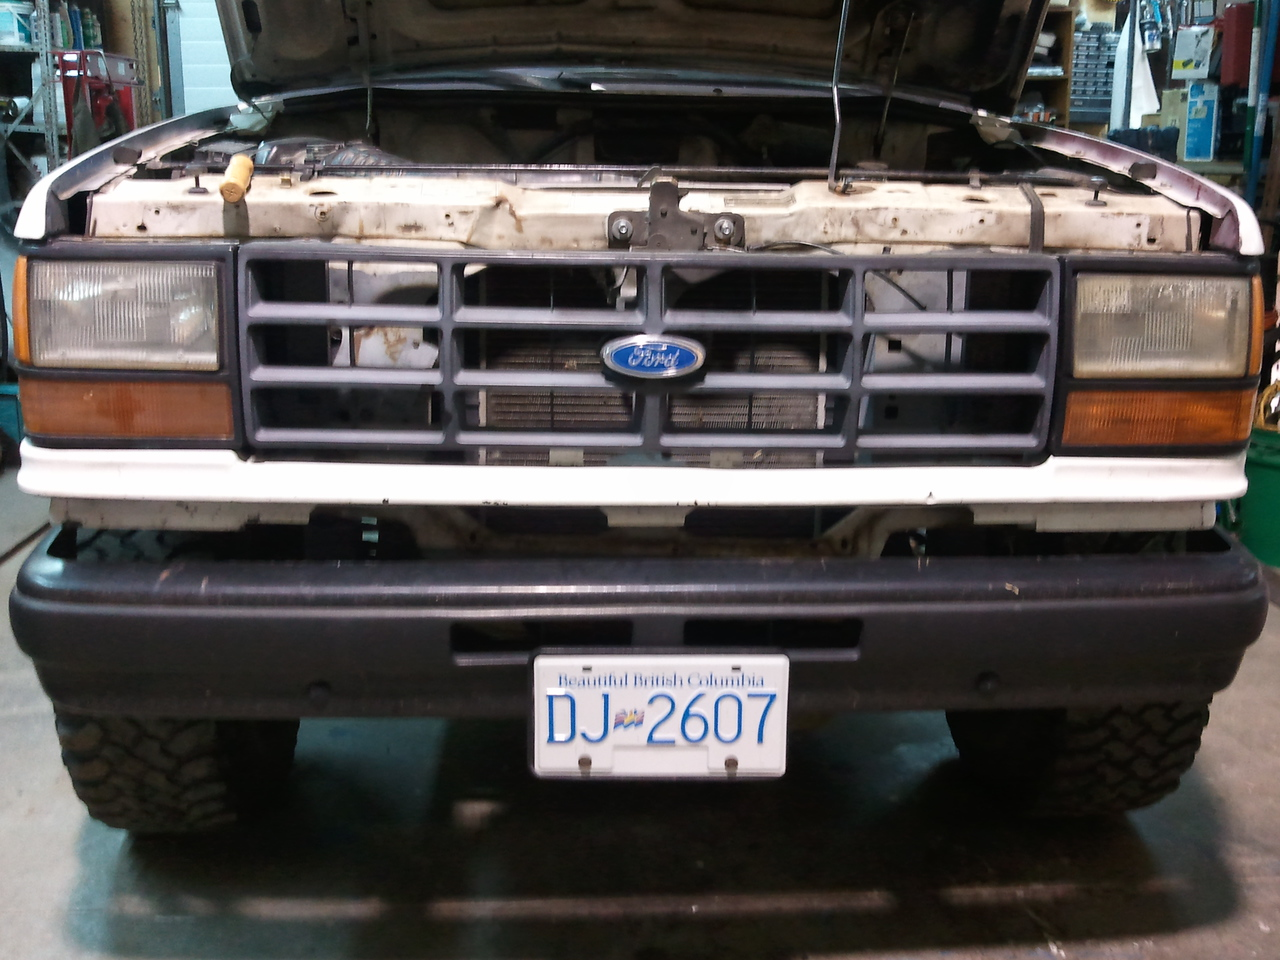 So I remember what the front end should look like